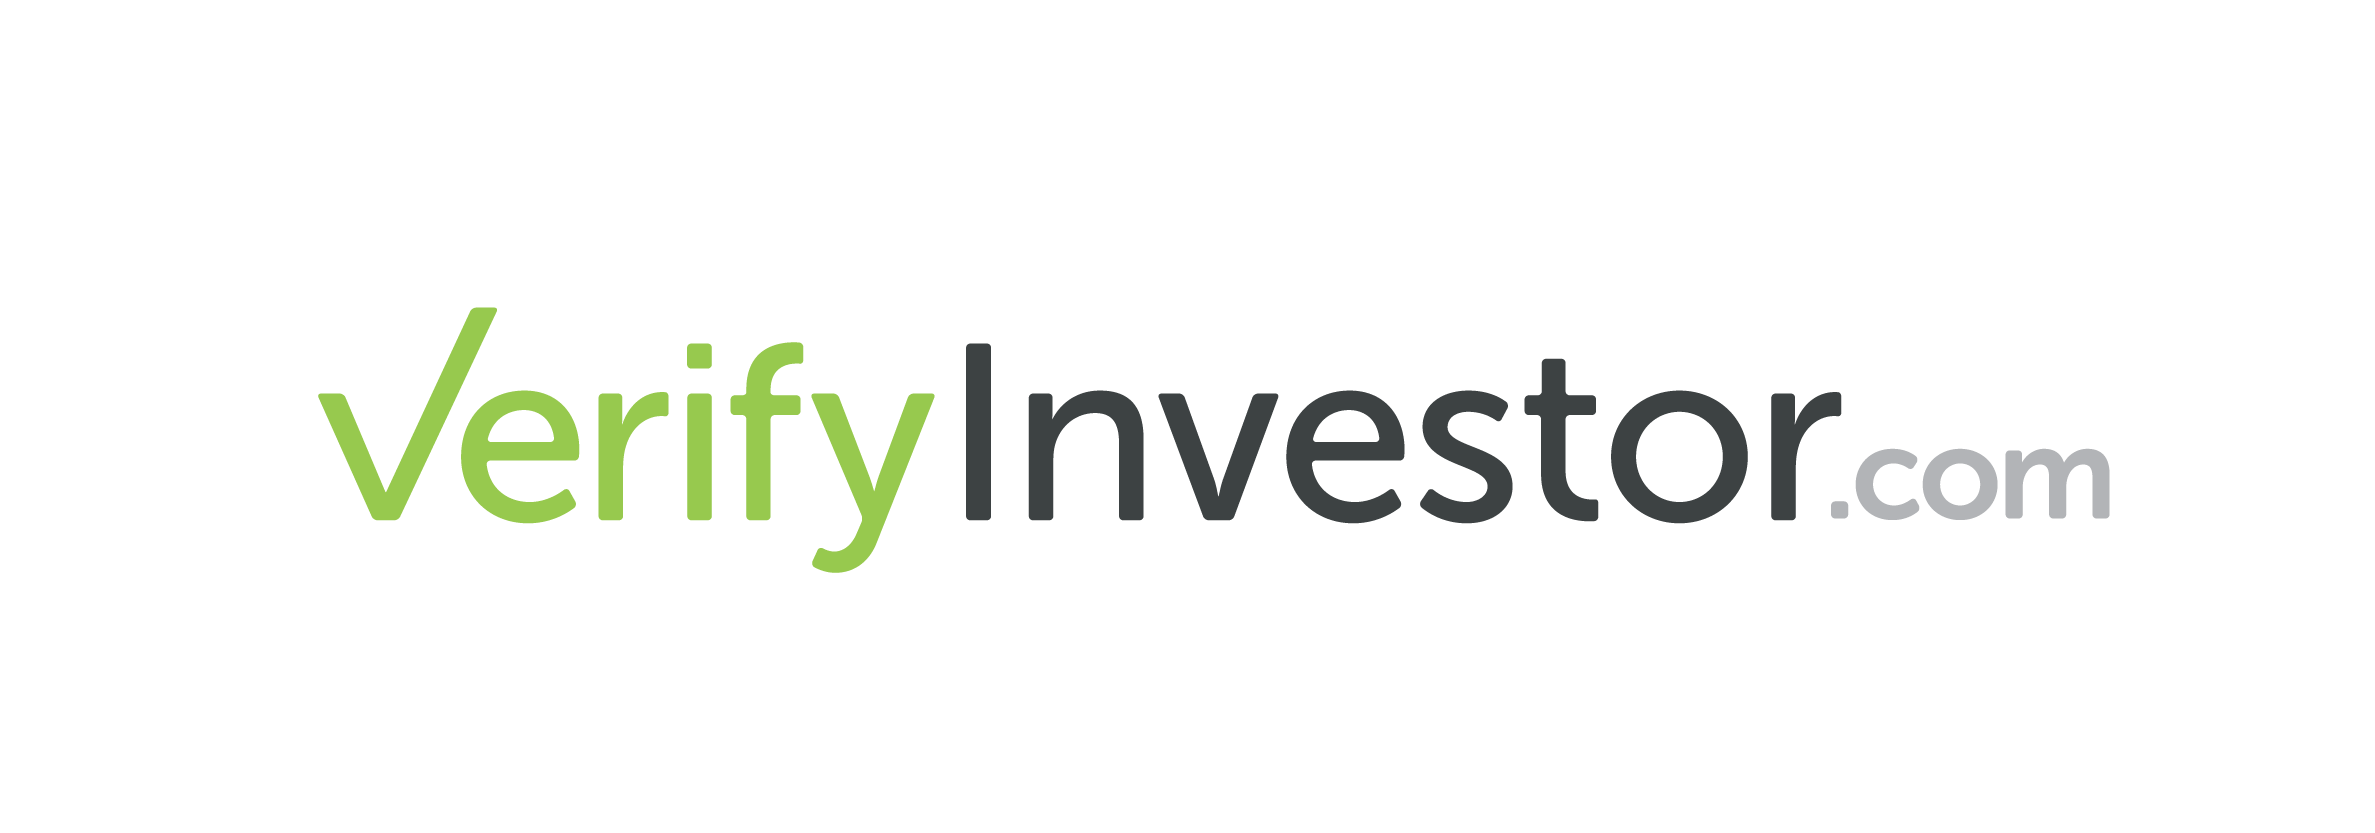 VFY-Logo-Clear.png